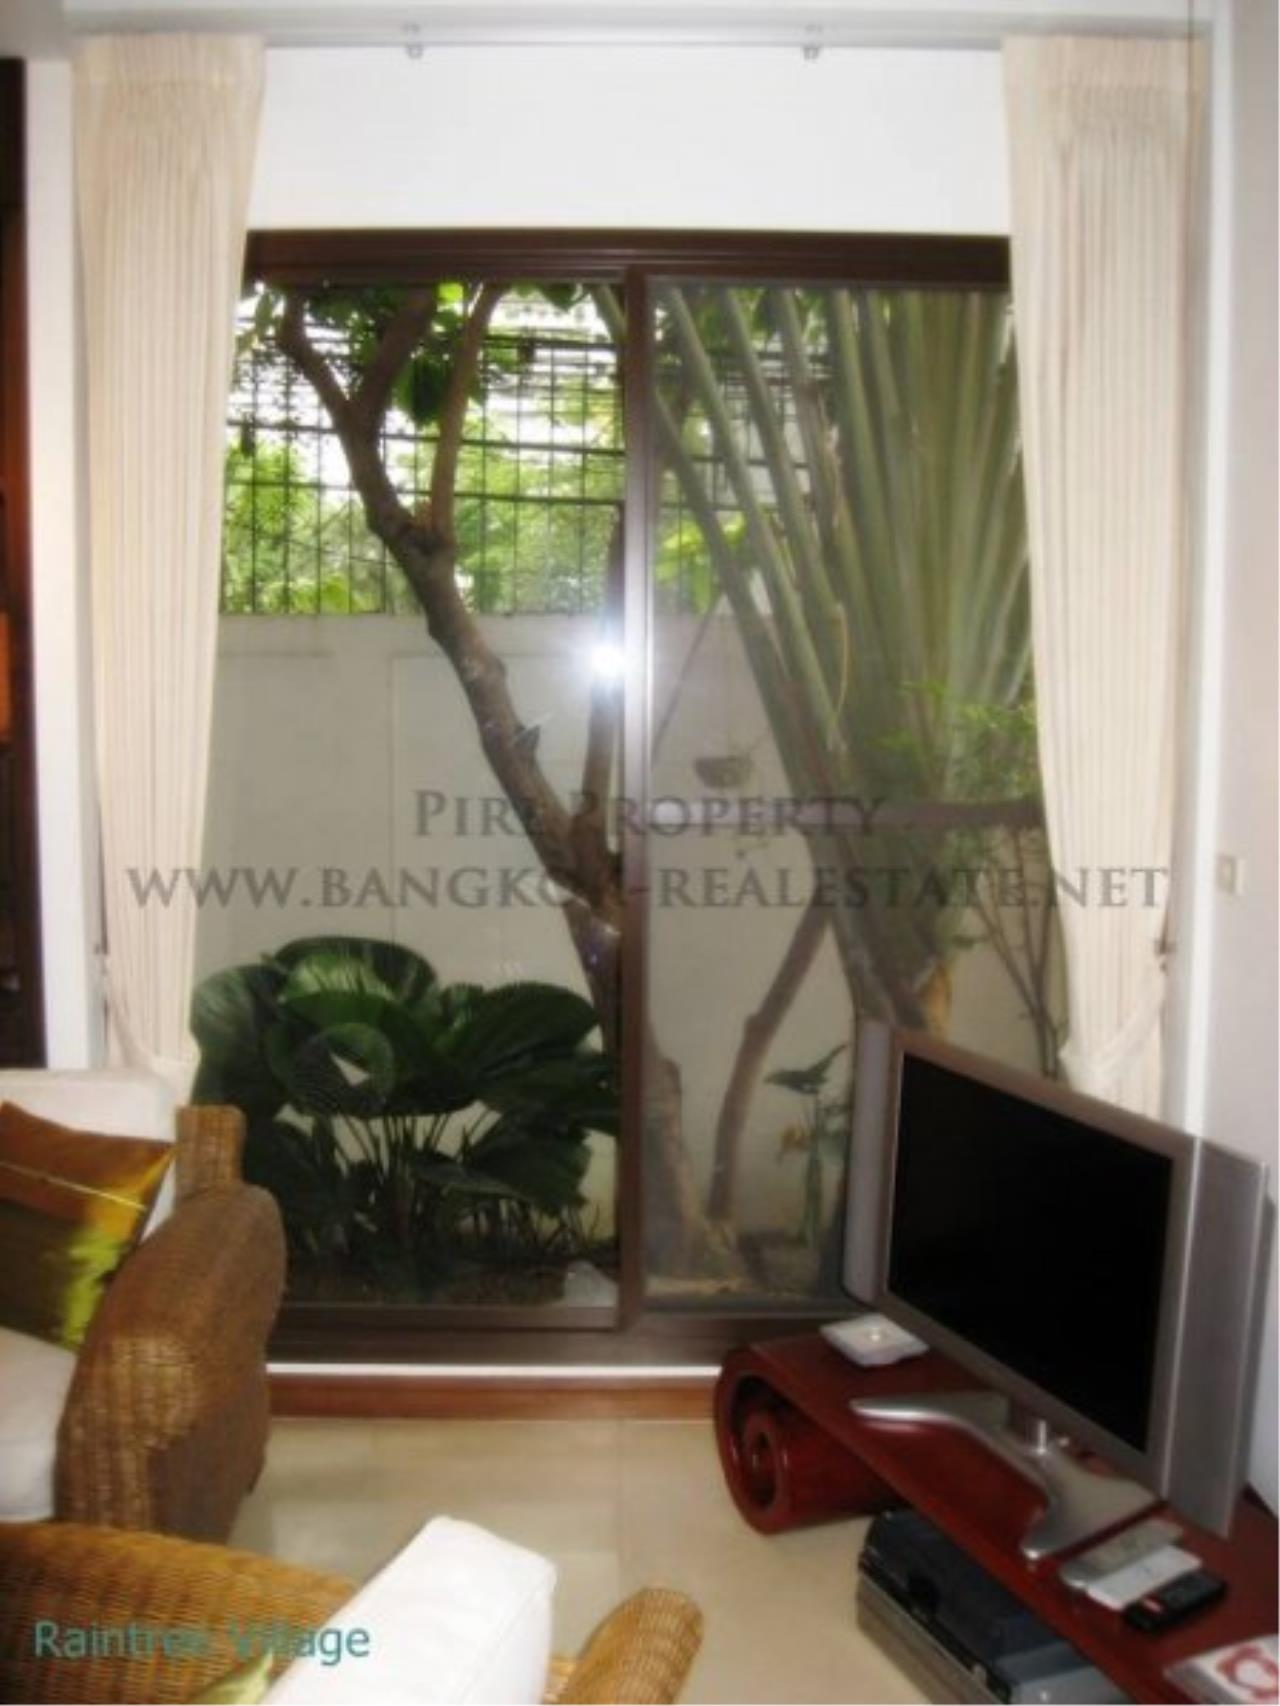 Piri Property Agency's Townhouse Apartment nearby Emporium for Rent - 3 plus 1 Bedroom 15